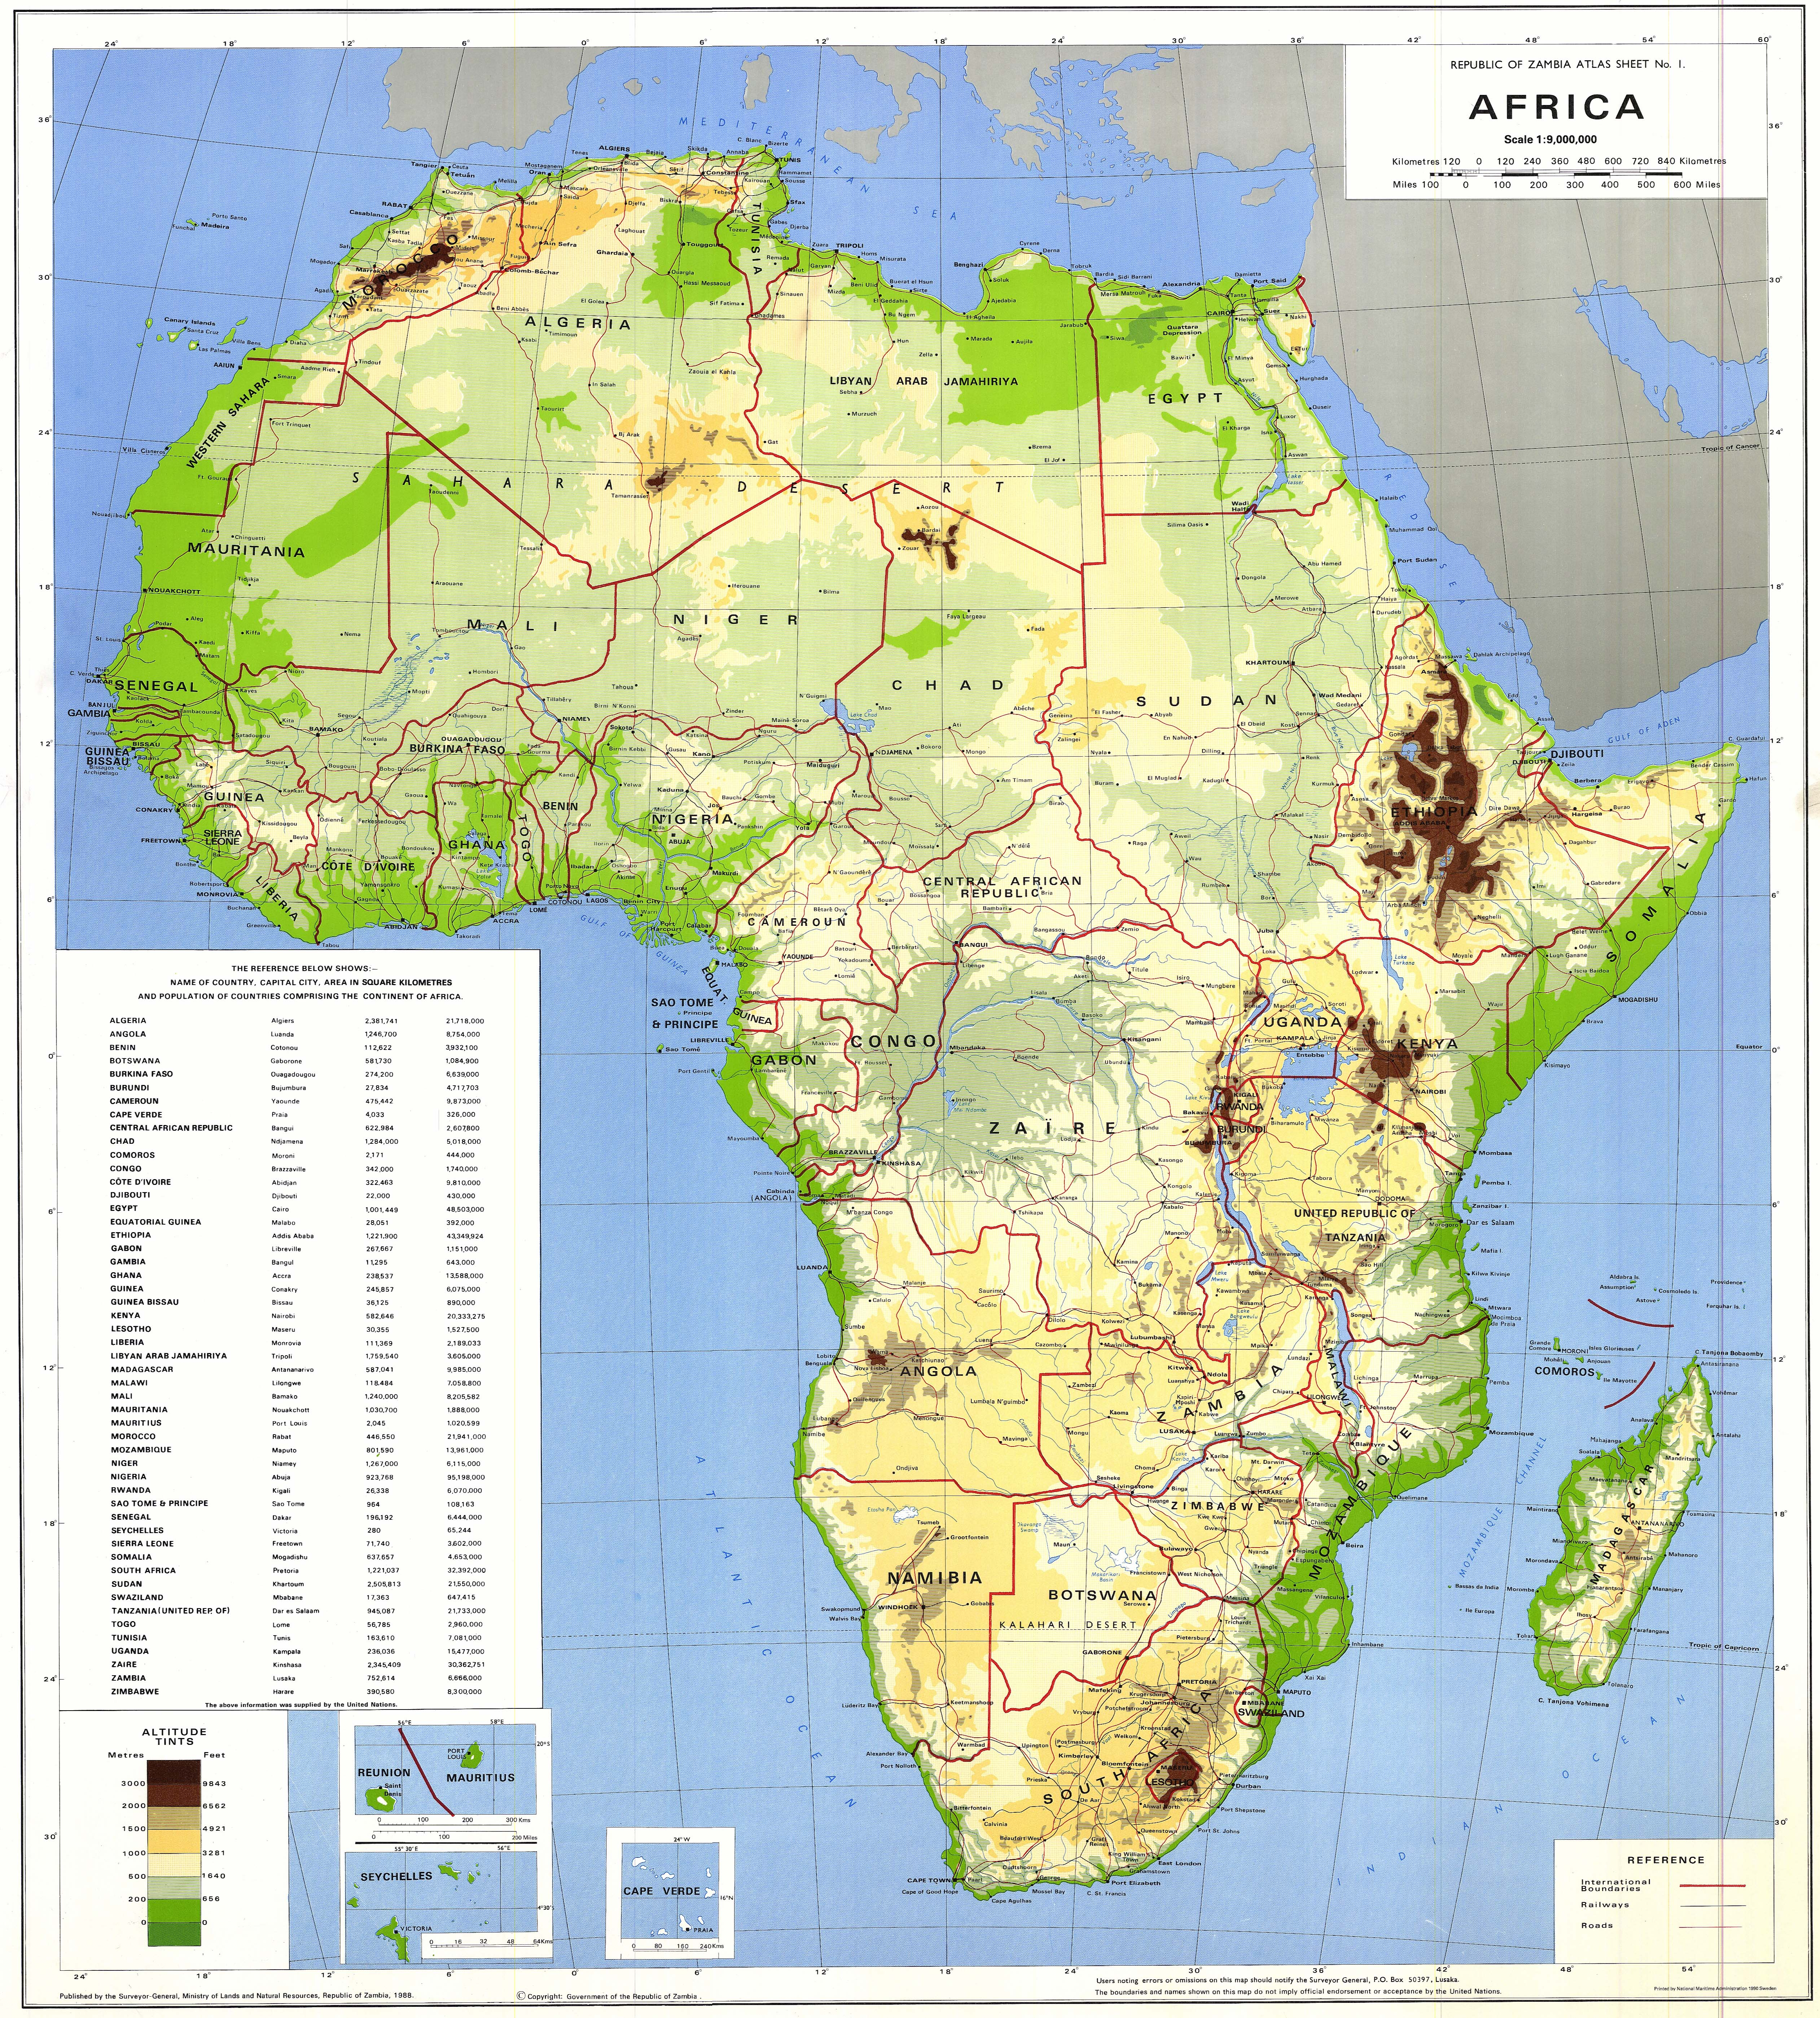 Africa physical map 1988